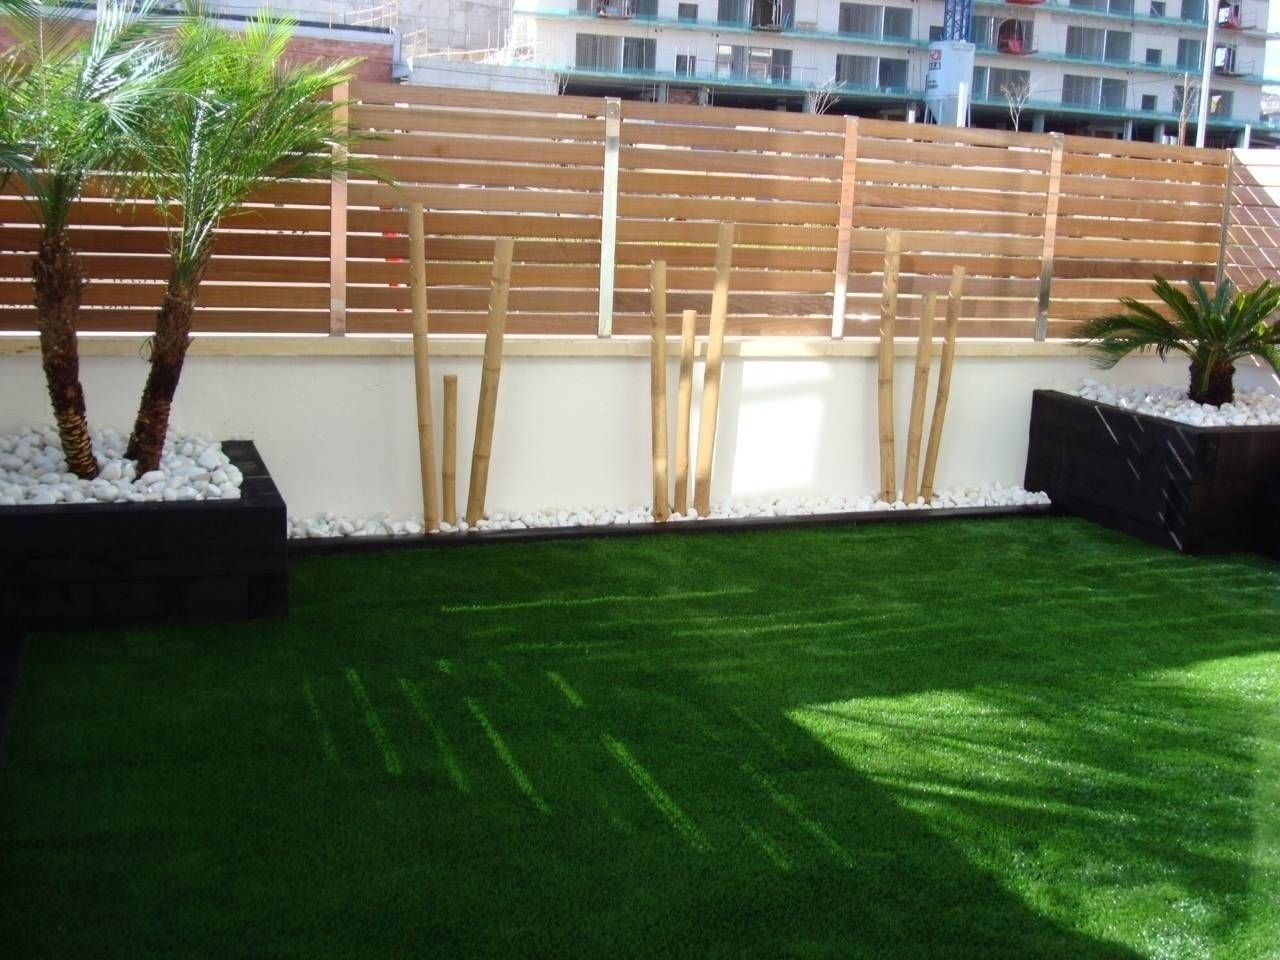 Fotos de decoraci n y dise o de interiores patios - Terrazas con cesped artificial ...